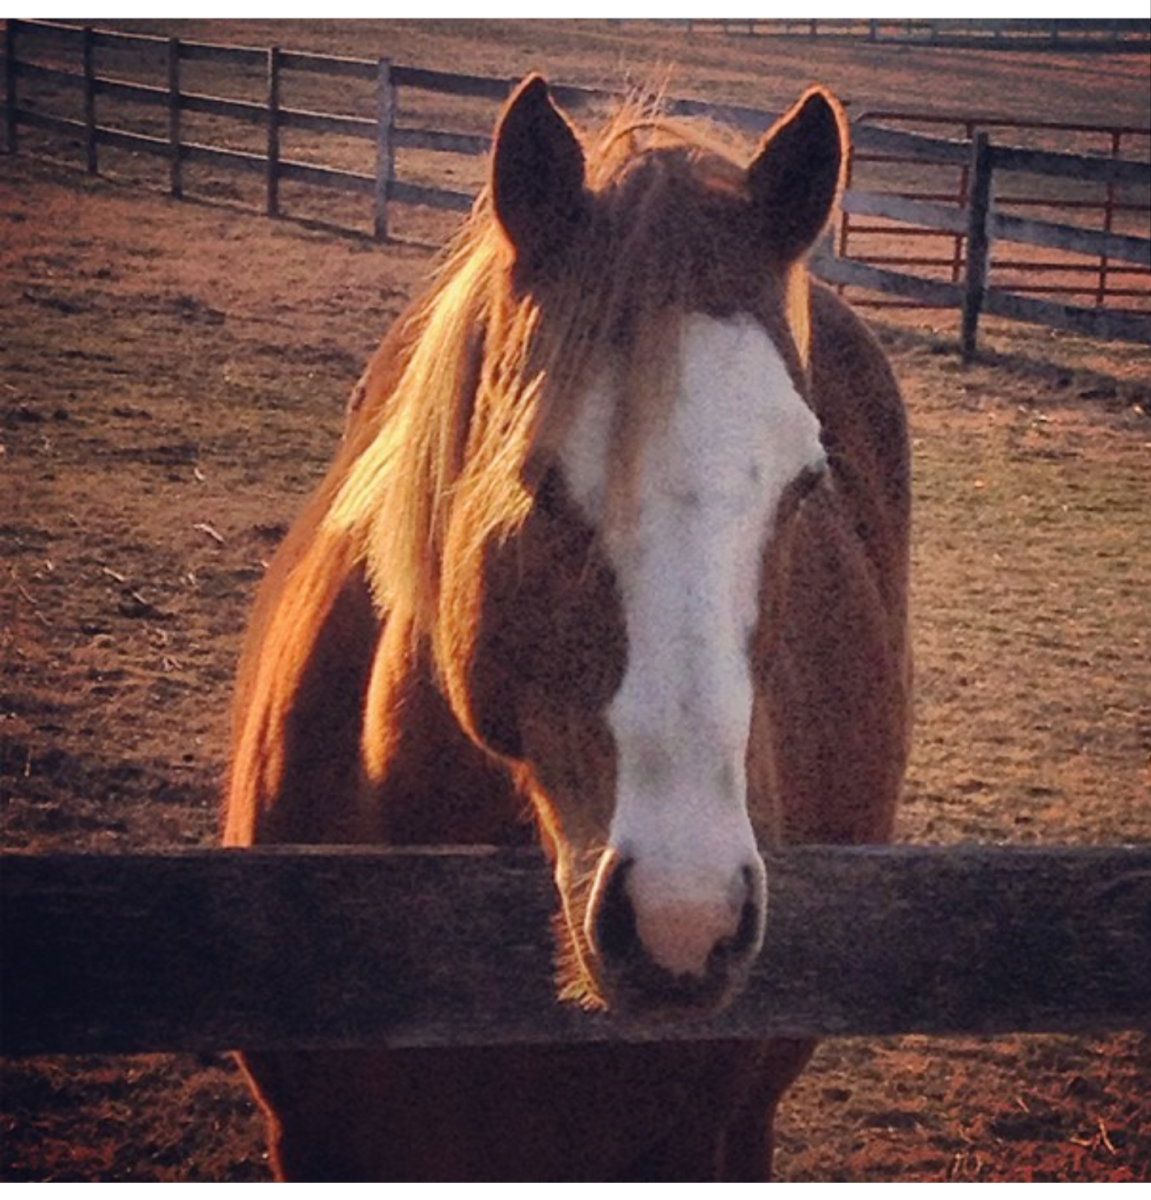 This is Spunk, a little mare that was born on our farm. I just never did get along with her for whatever reason. I sent her to a trainer friend of mine to be broke to ride and then to another trainer friend to find a home.